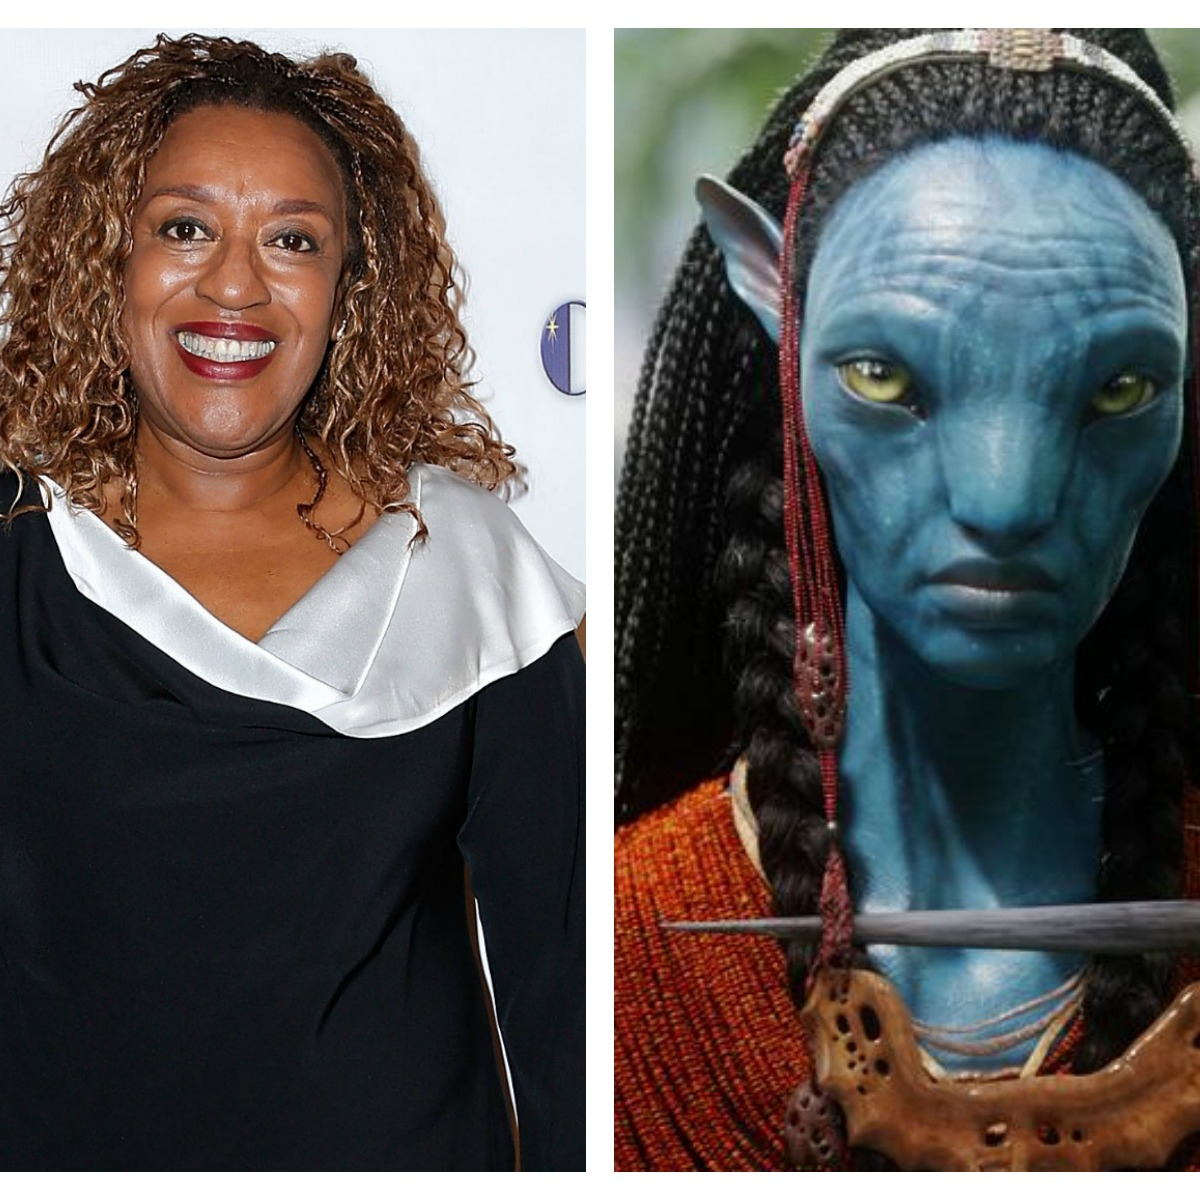 See the Cast of 'Avatar' in and out of Character!